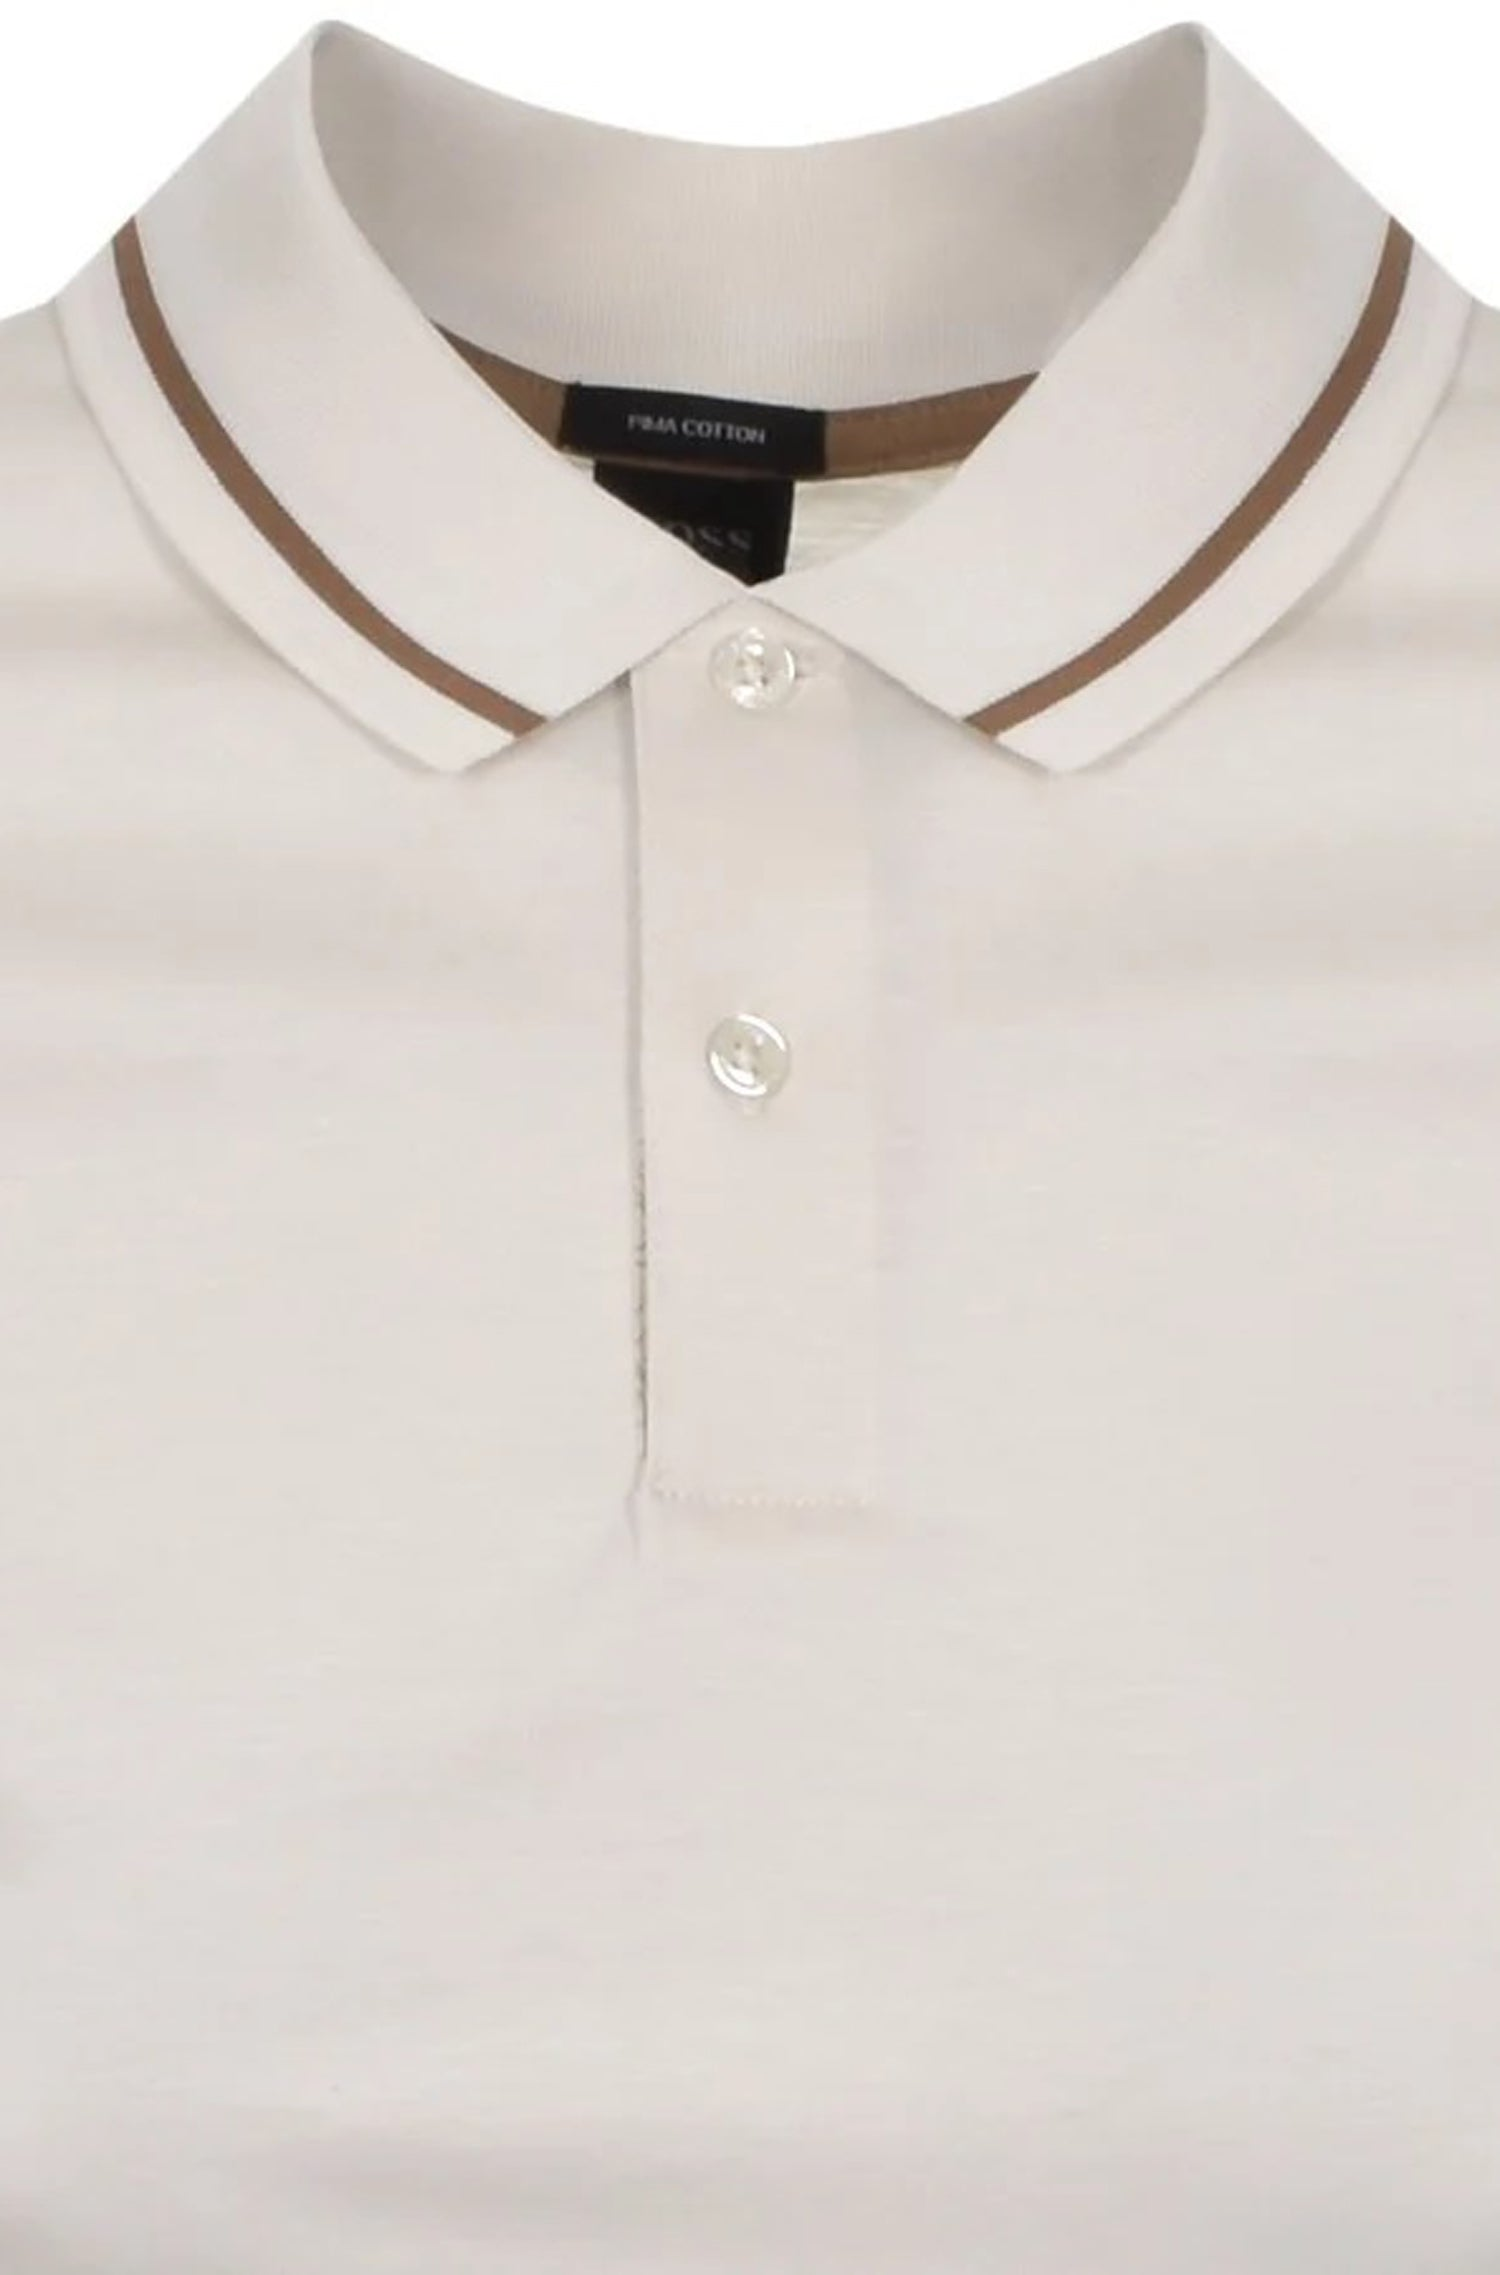 Hugo Boss - PARLAY 108 Open White (Cream) Soft Pima Cotton Polo Shirt with Tipping Detail 50448903